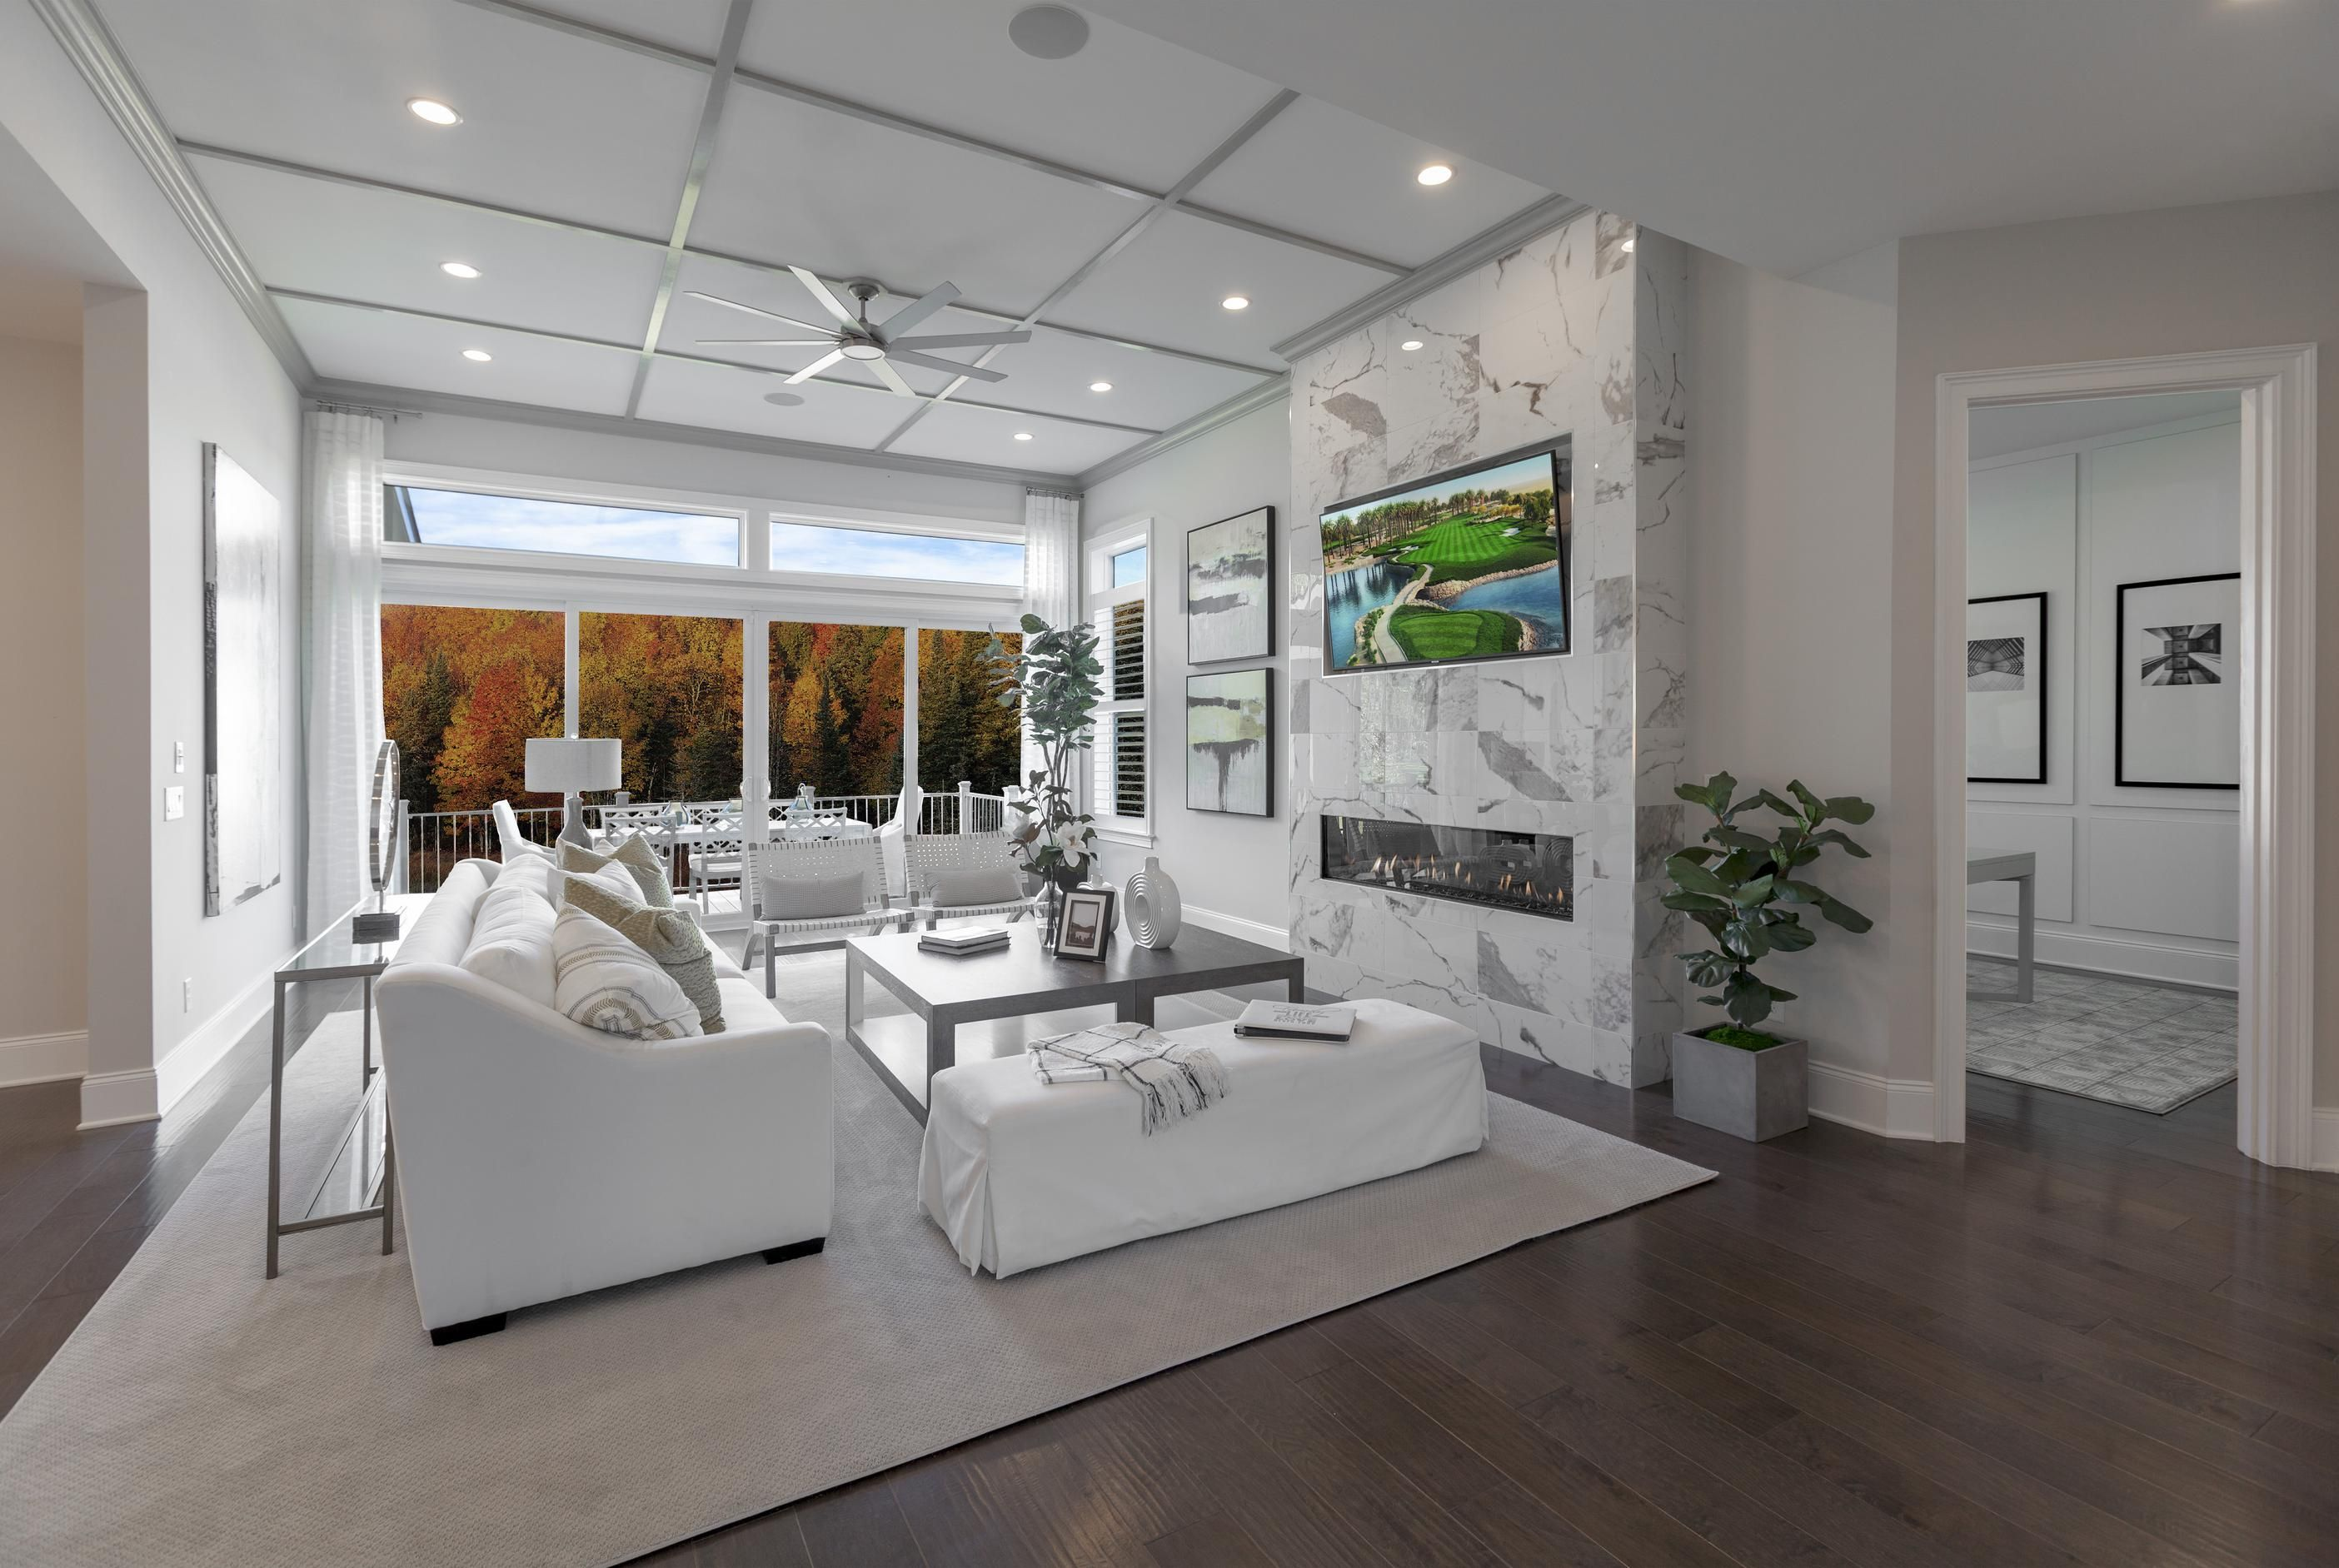 The Elegance Of This Living Room Stems From Its Intricate Use Of Accent Walls Ceilings And Soothing Colors Pictured Above In 2020 Luxury Homes Home Dream Spaces #soothing #colours #for #living #room